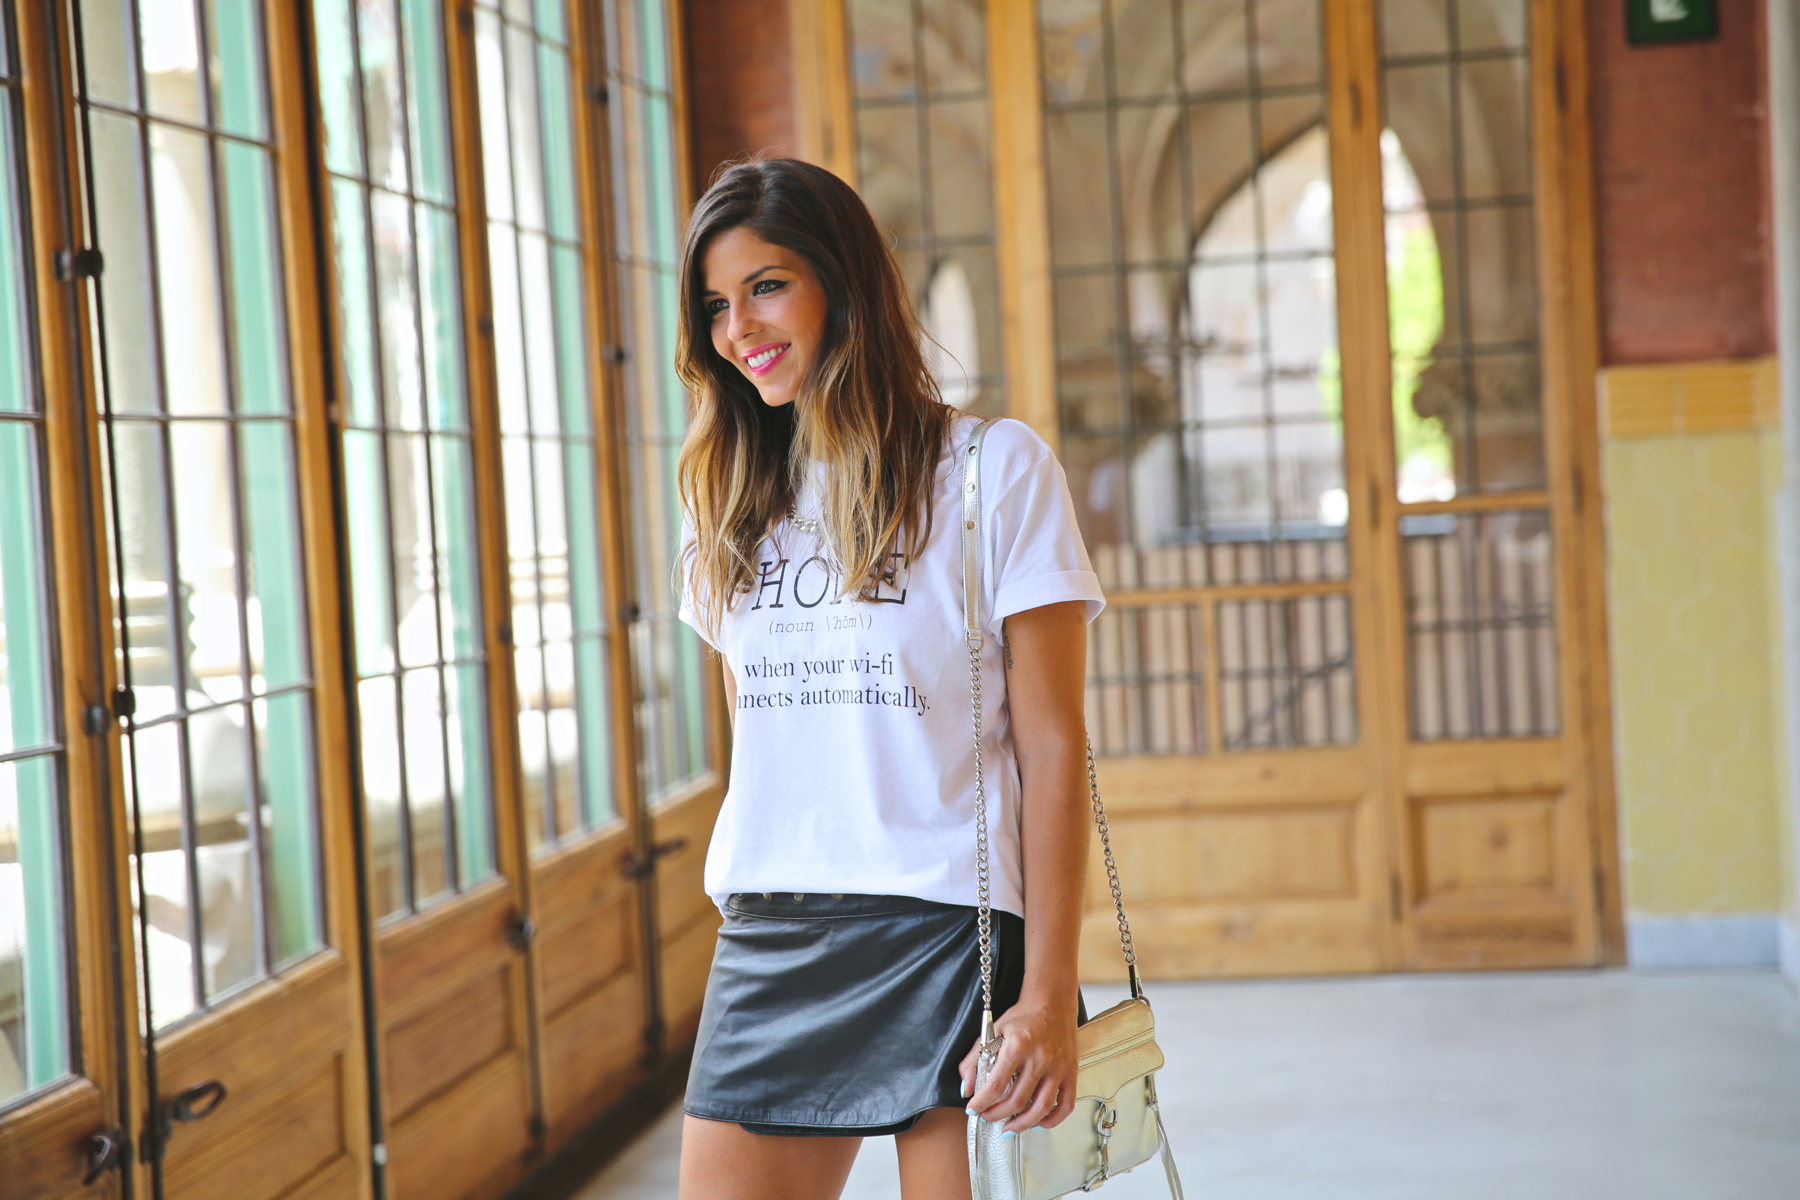 trendy_taste-look-outfit-street_style-ootd-080_barcelona-fashion_spain-moda_españa-blog-blogger-seat_mii-basic_tee-camiseta_basica-animal_print-sandalias_cordones-falda_cuero-leather_skirt-7